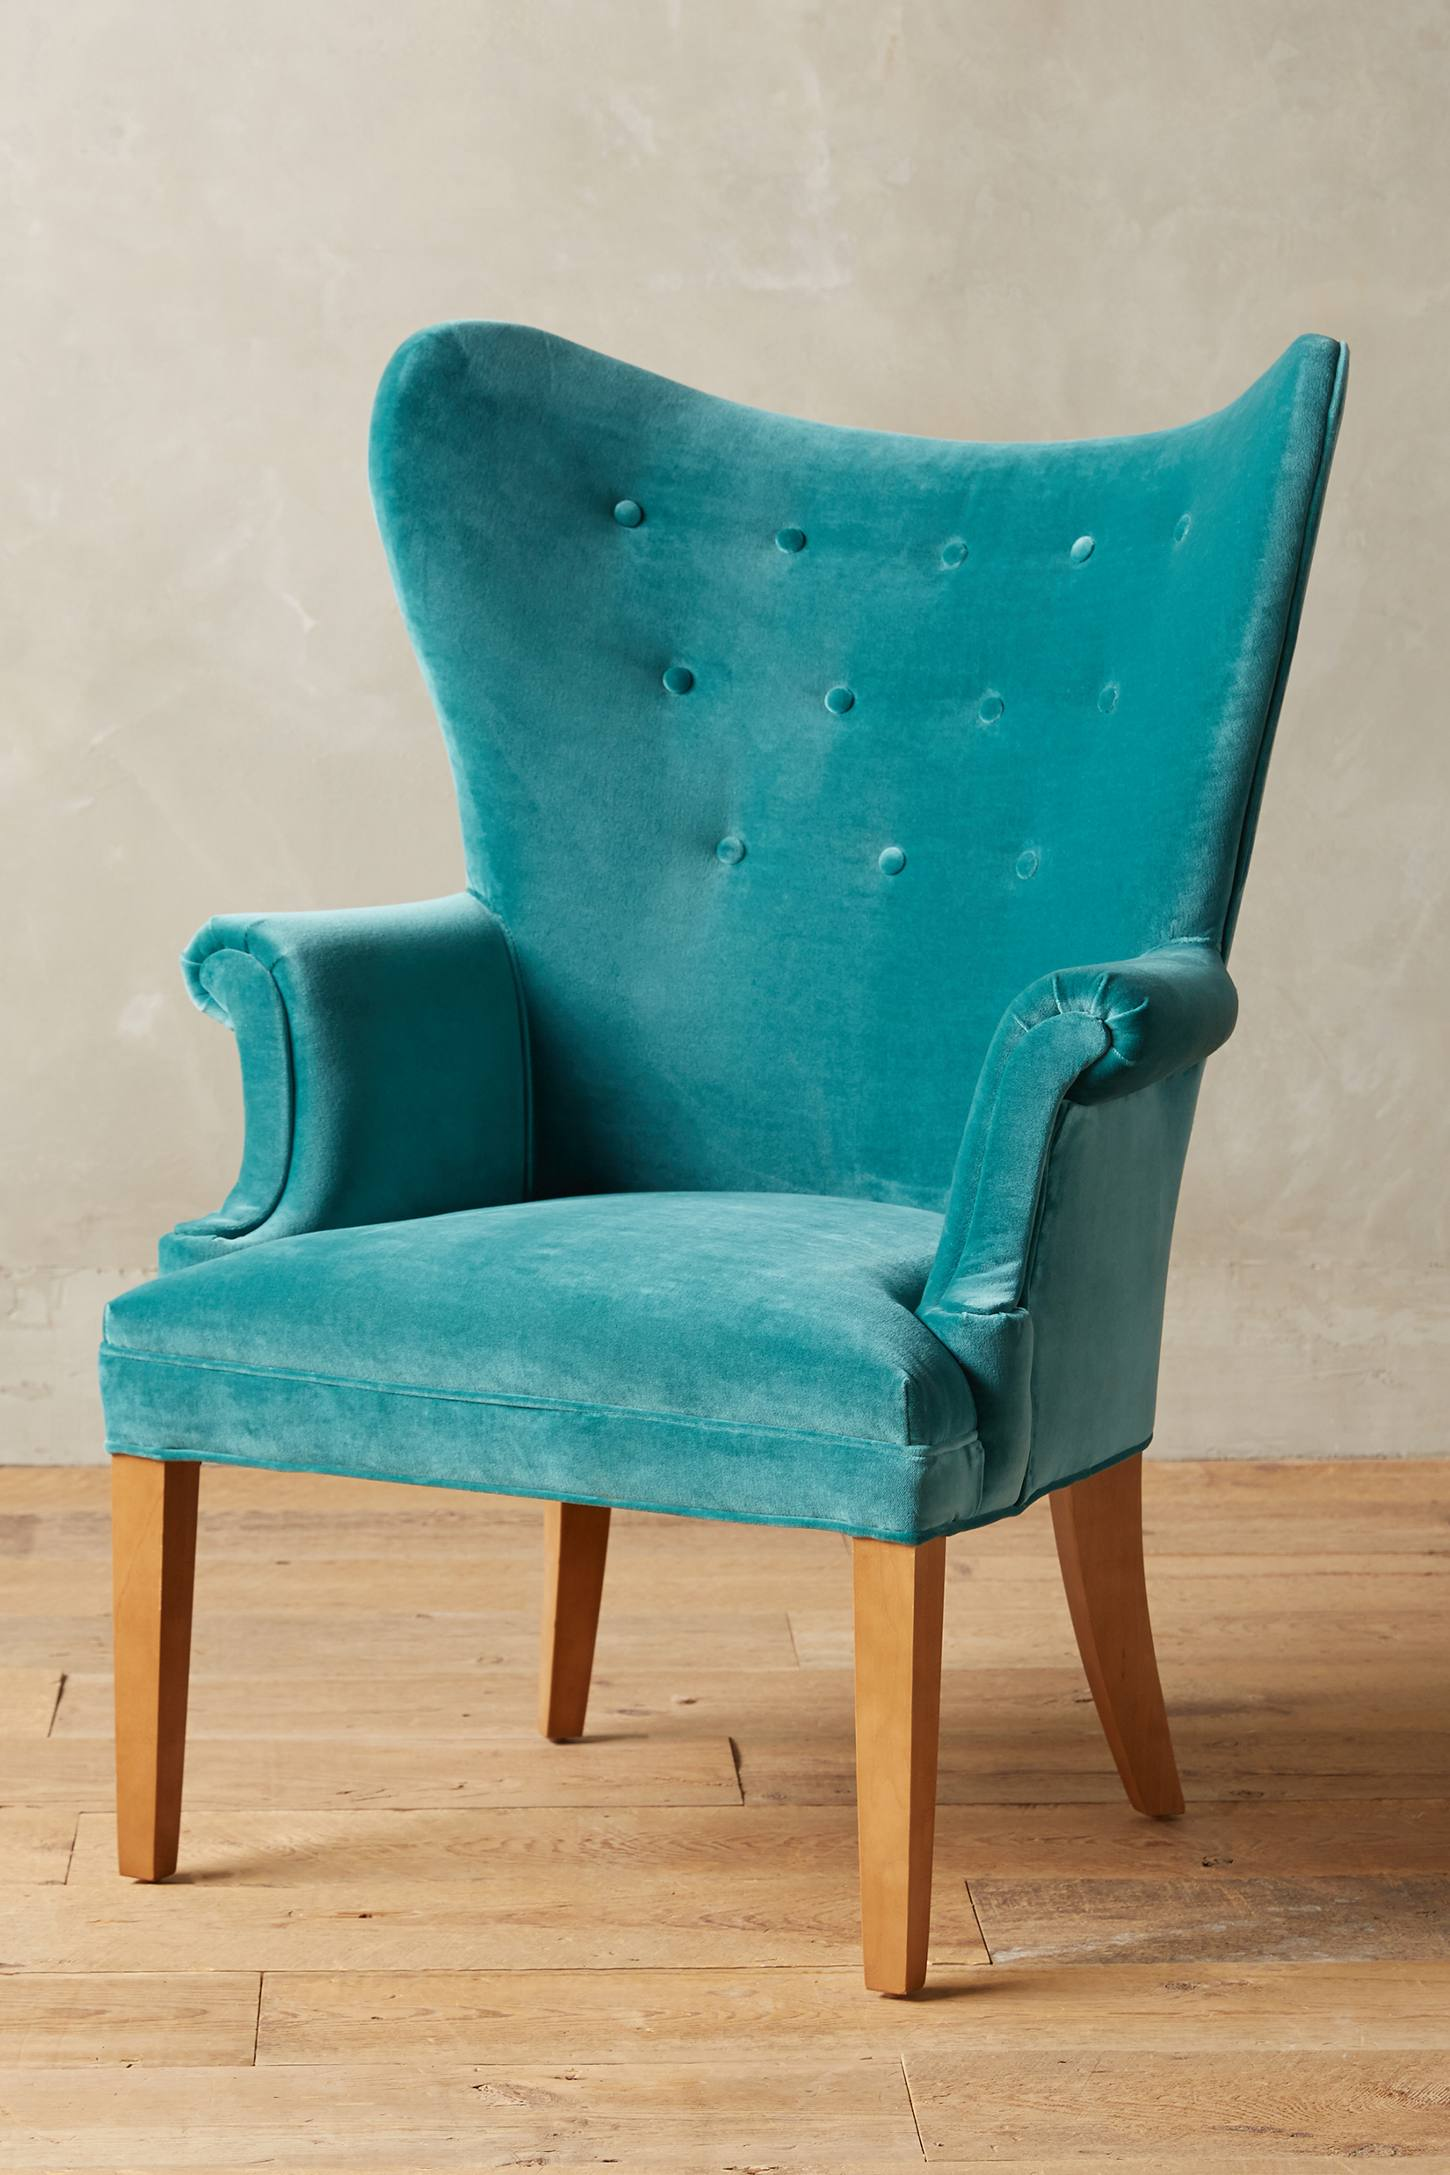 Teal Colored Chairs